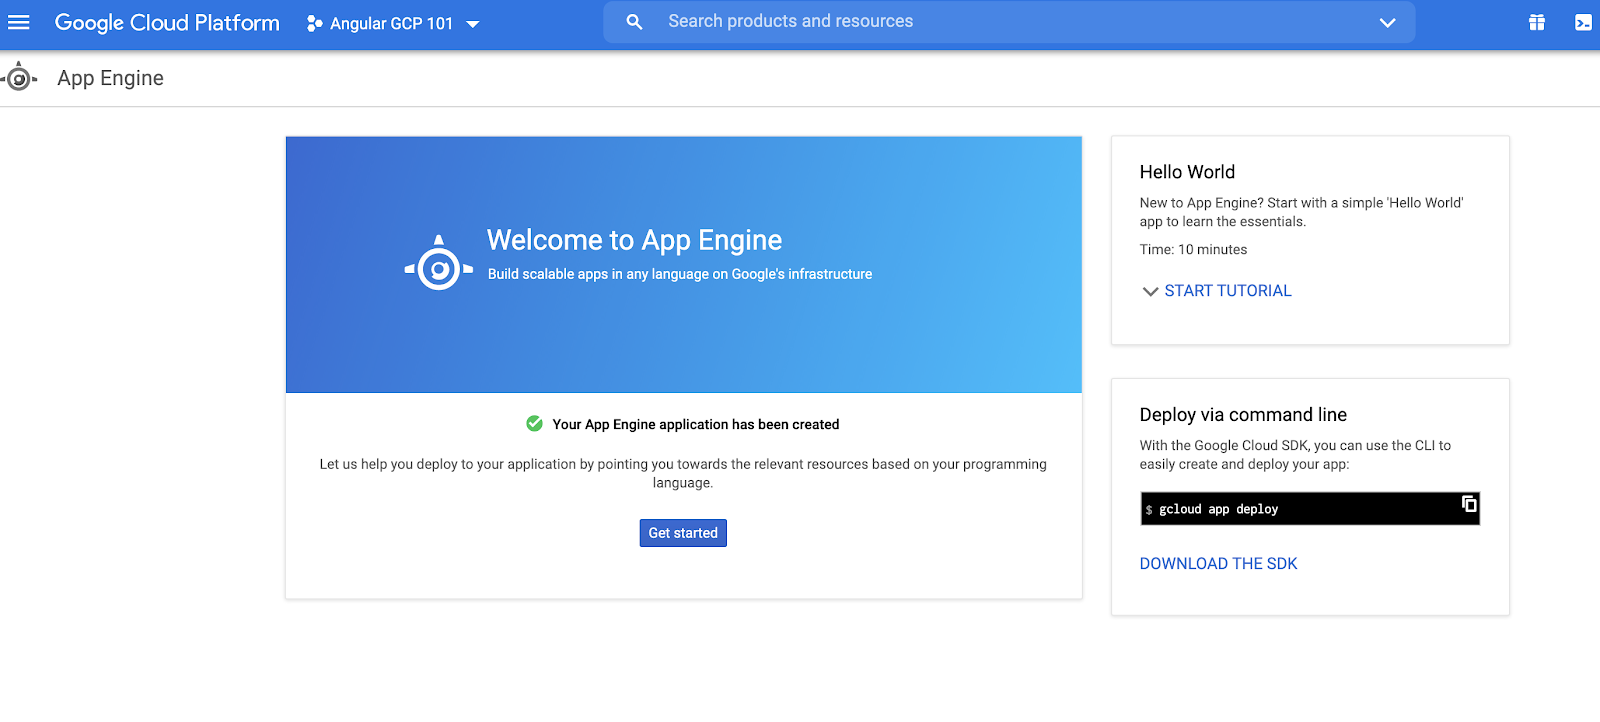 Enabling the App Engine API on gcp console